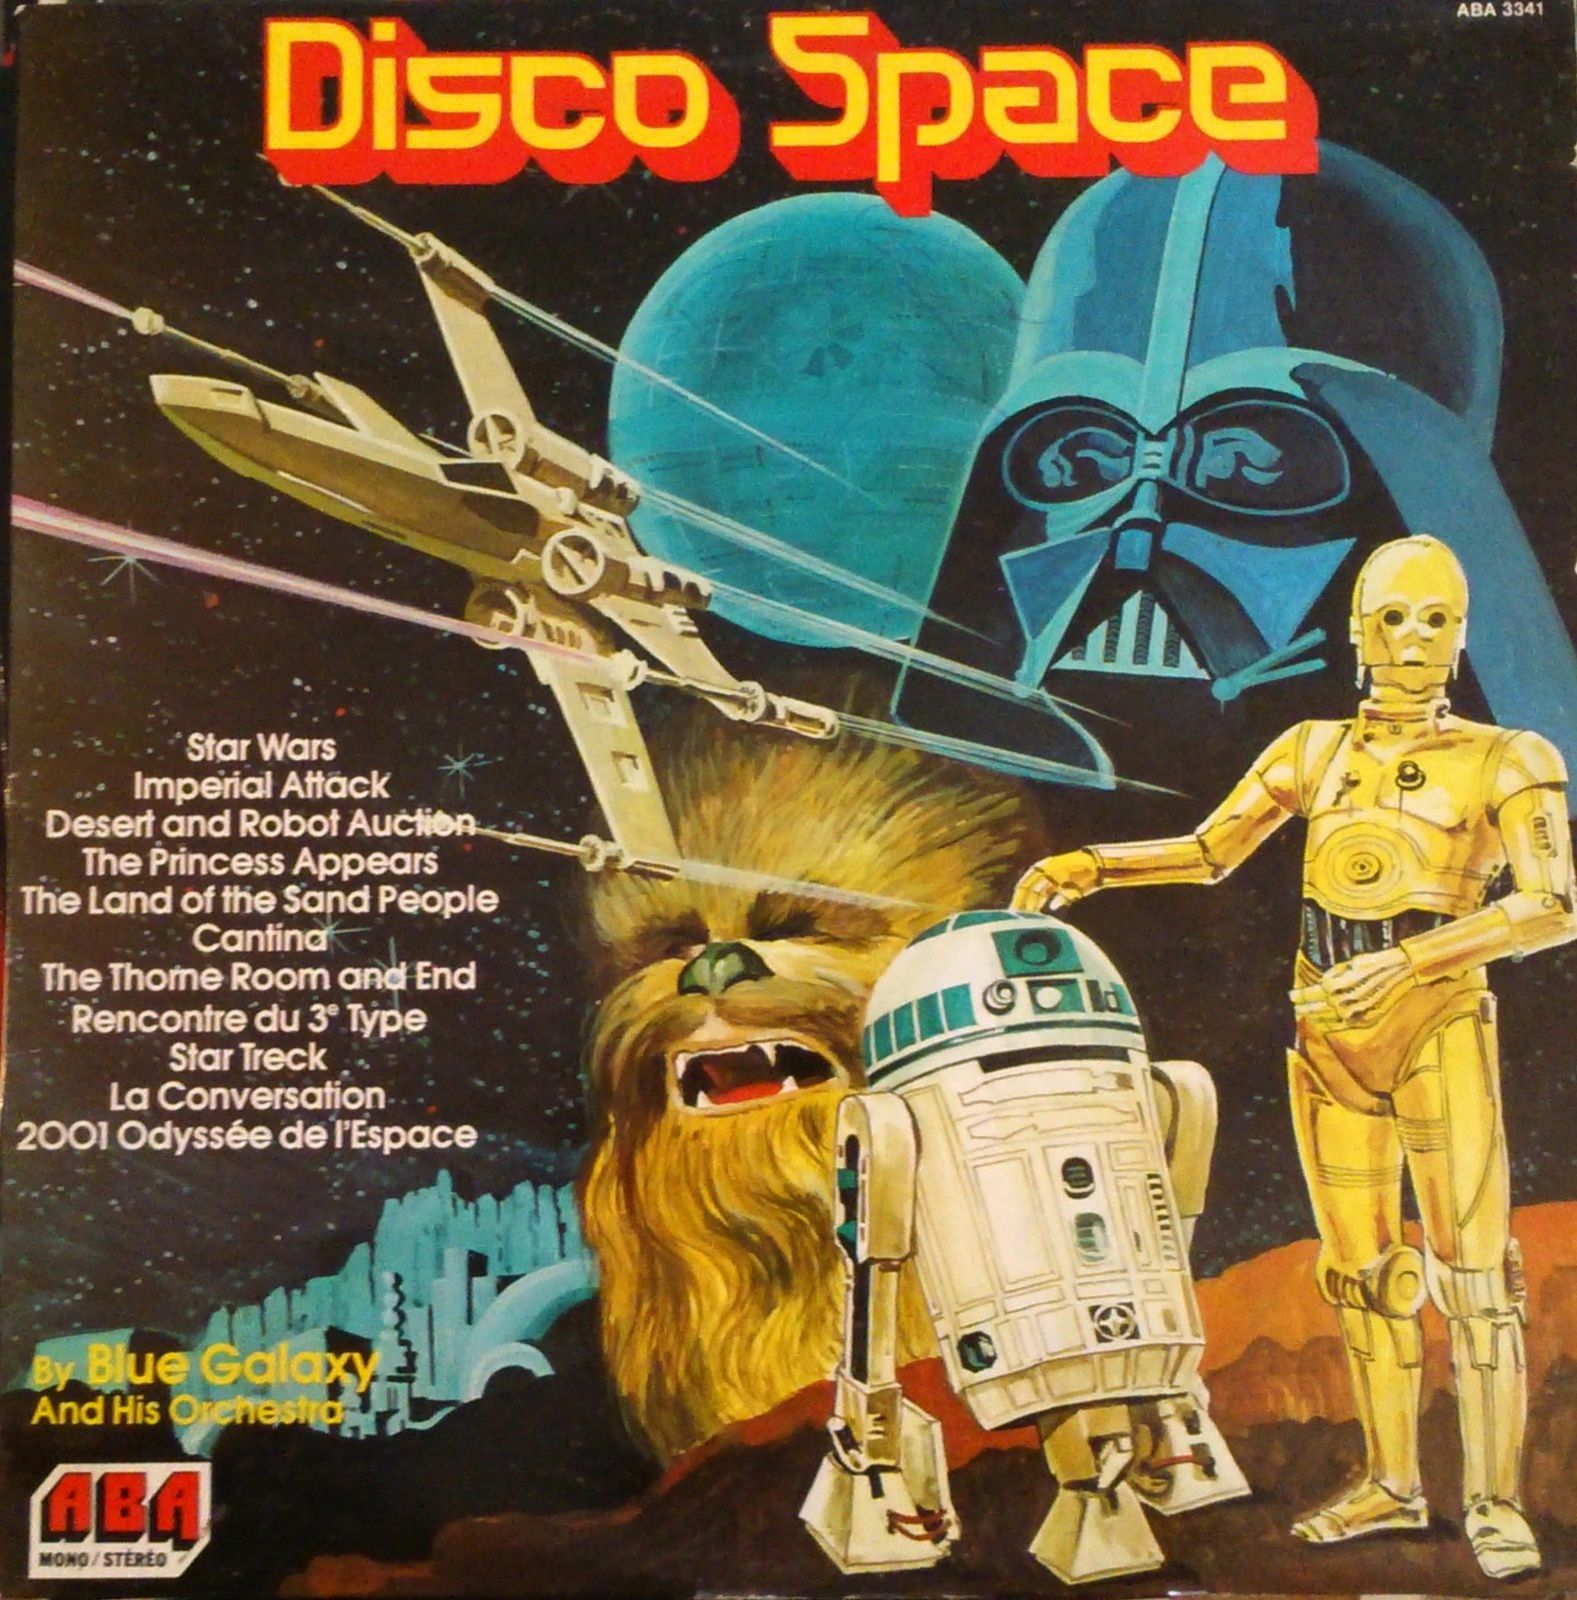 Blue Galaxy and his Orchestra - Disco Space LP (ABA - 1977)